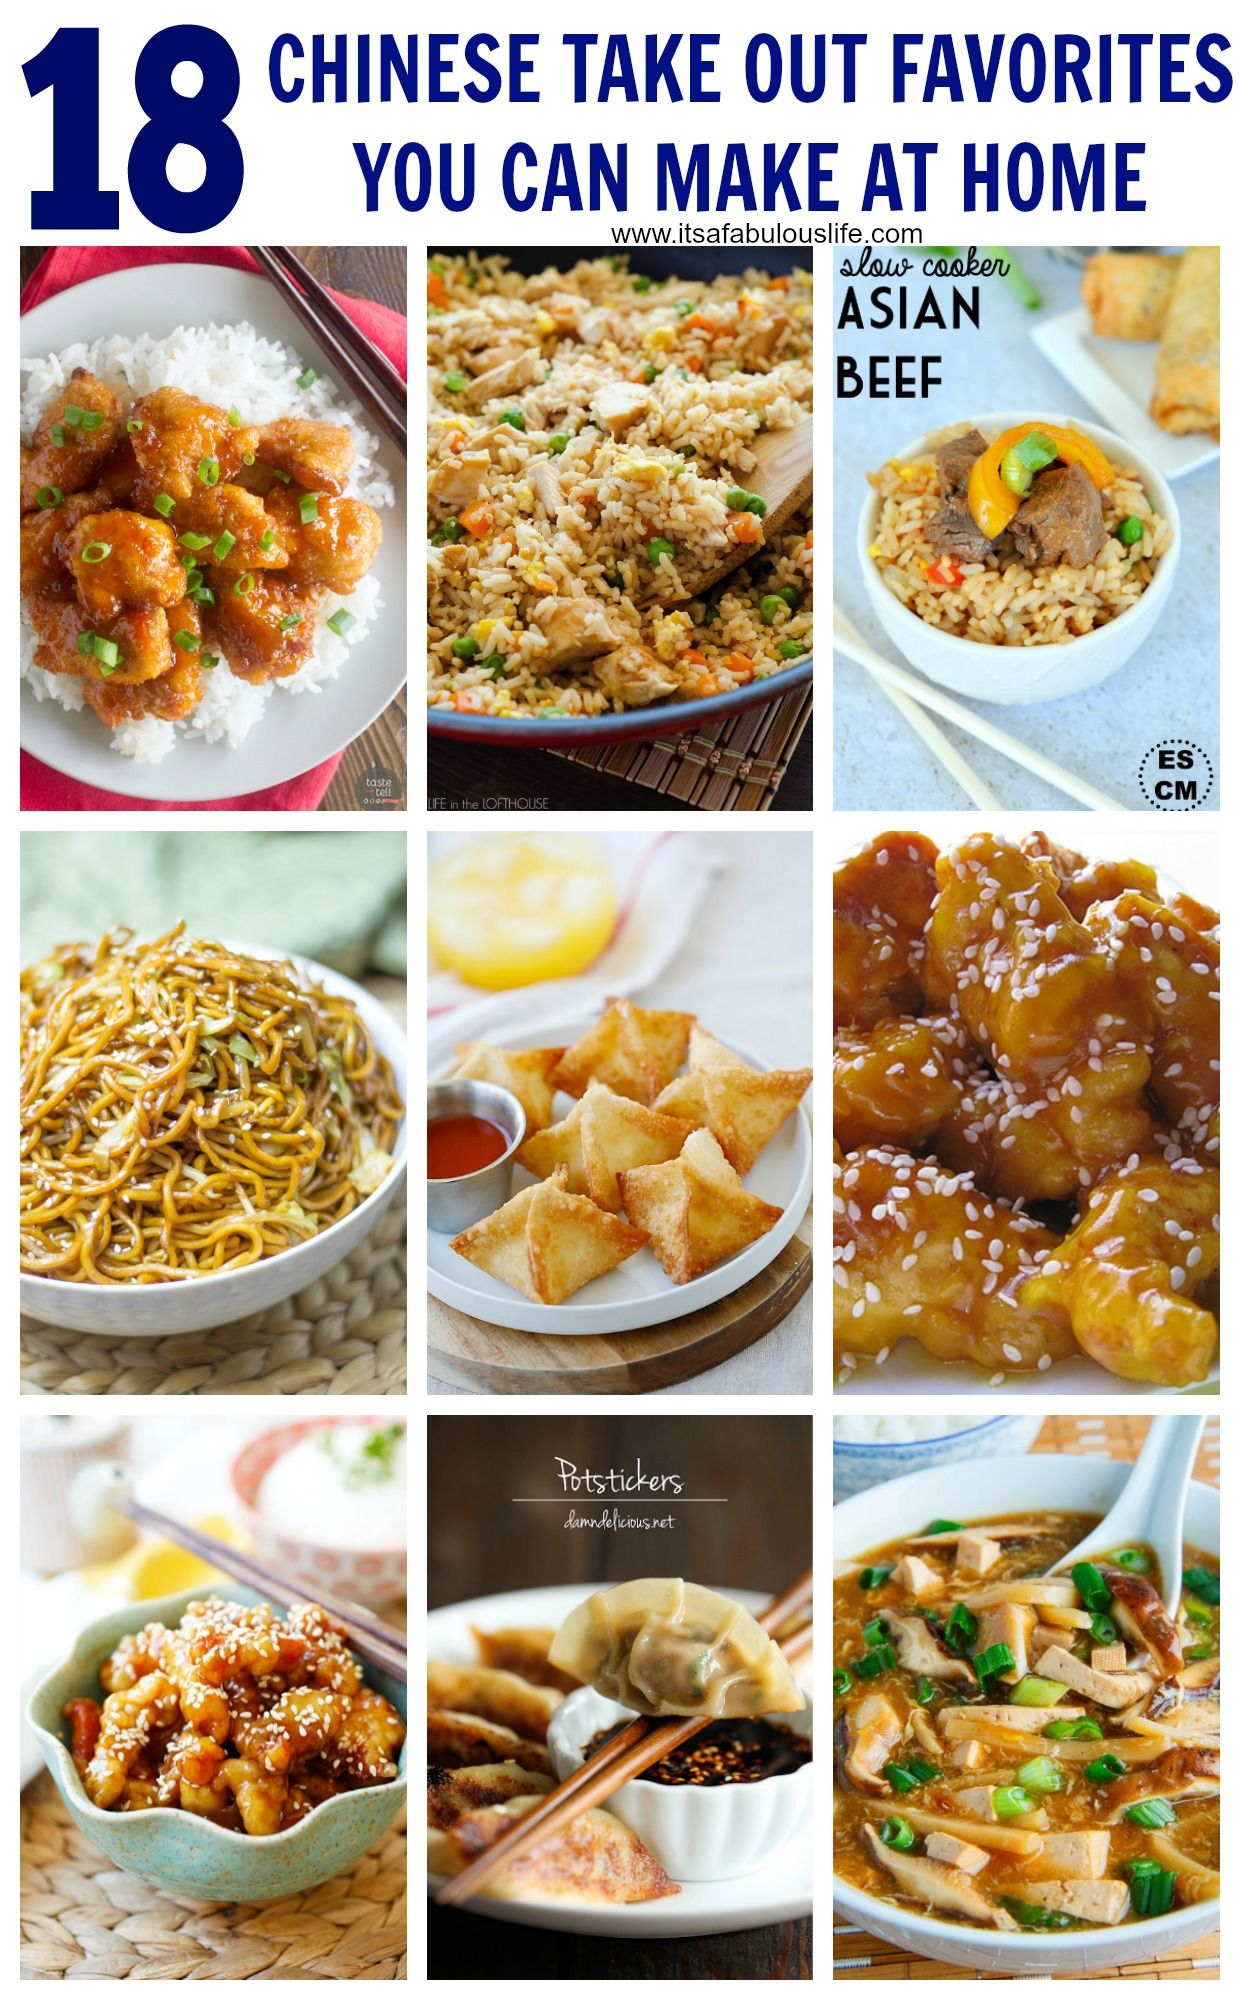 18 chinese recipes take out favorites you can make at home fun 18 chinese recipes take out favorites you can make at home chinese food recipes forumfinder Images